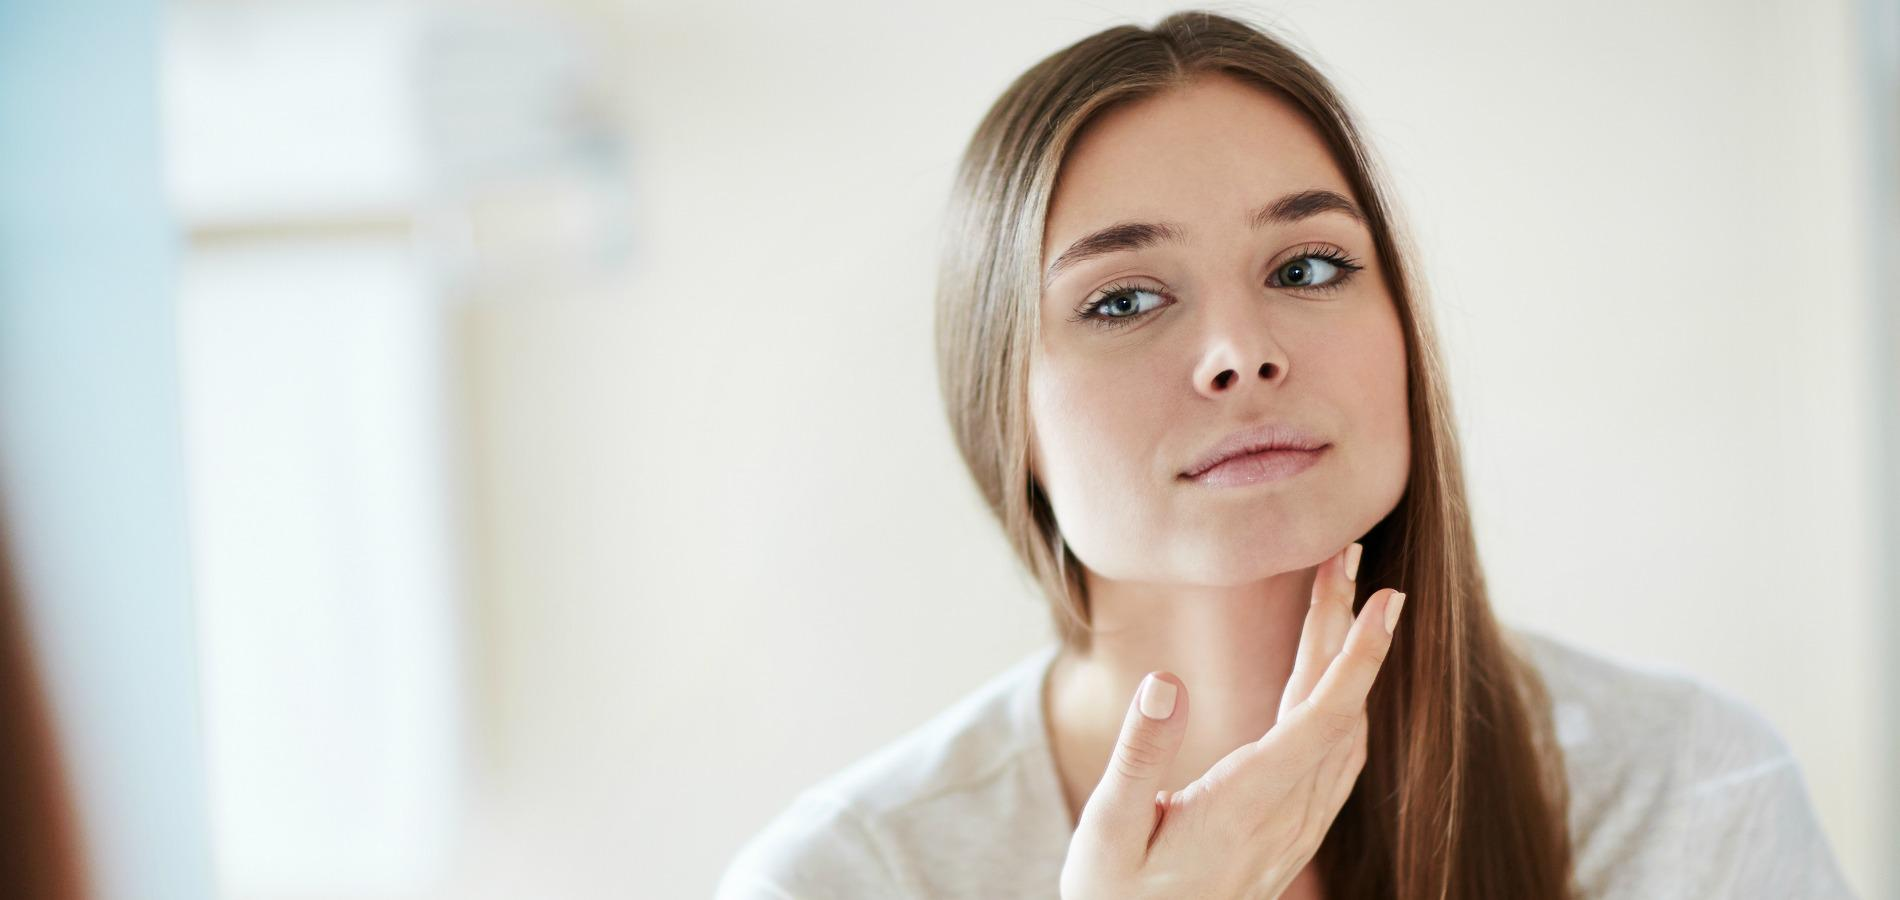 Young woman looking at mirror at home and applying cream on her face